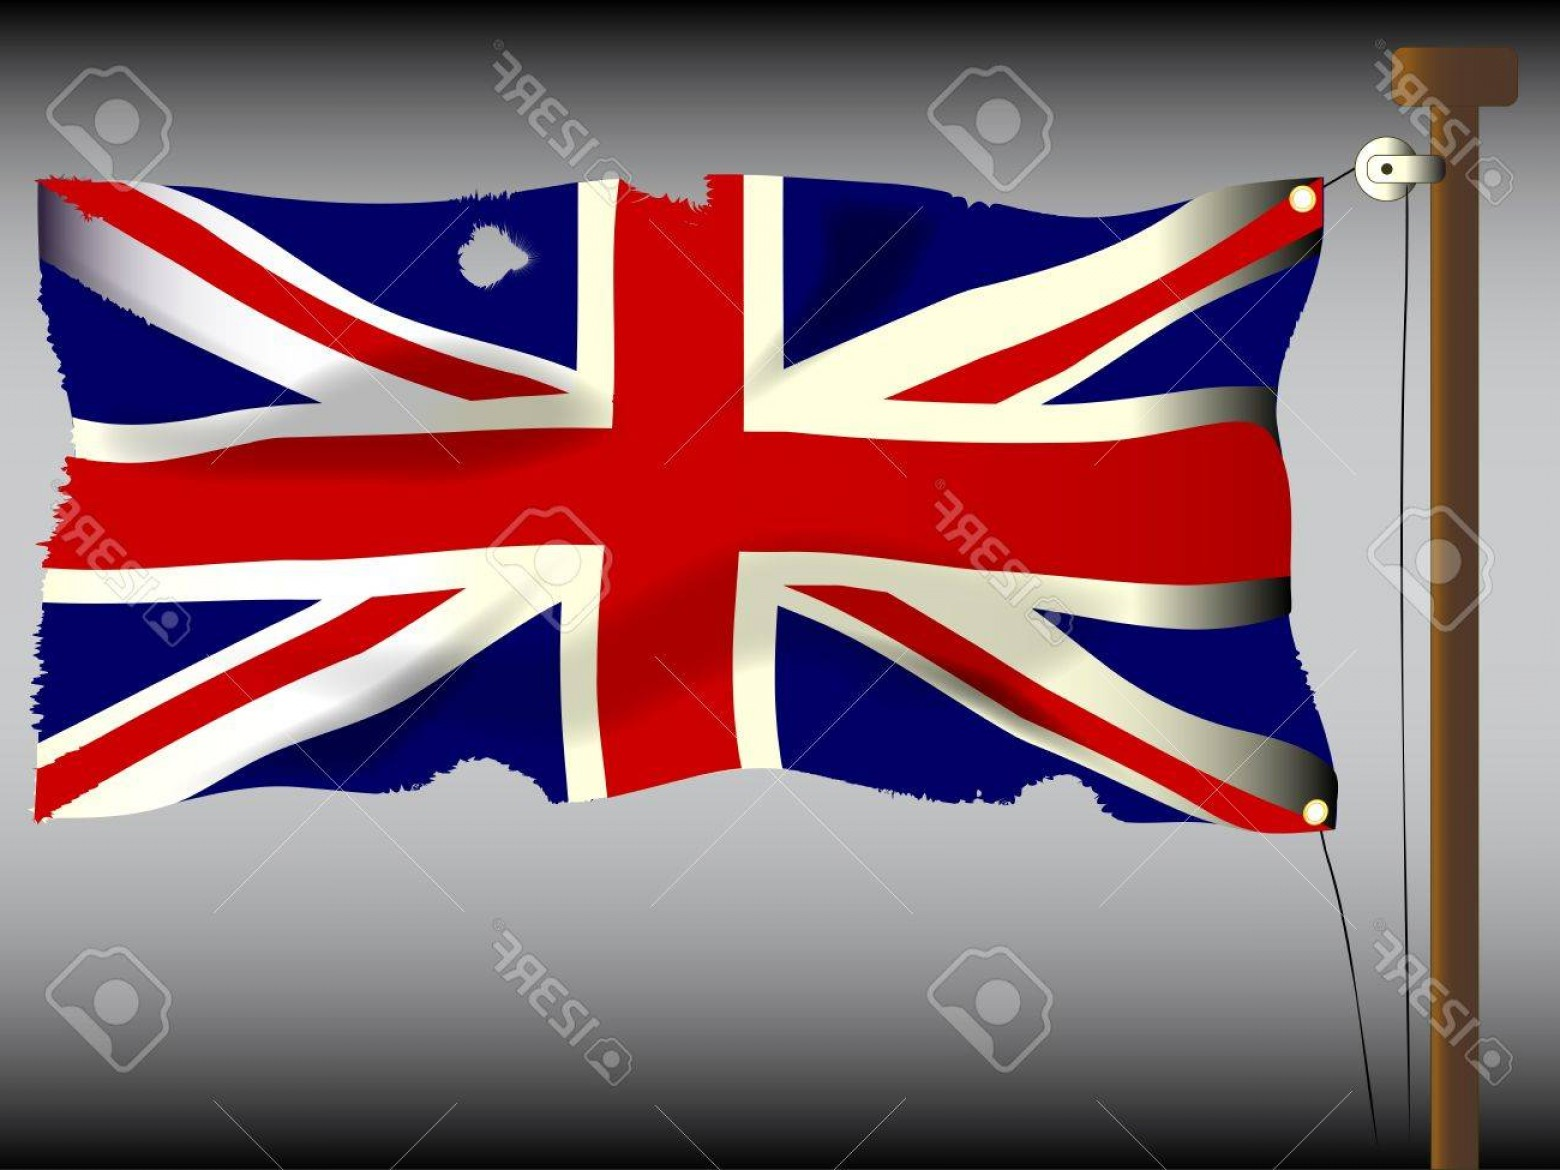 Union Jack Flag Tattered Vector: Photothe British Union Flag Or Union Jack When Used On Board Ship Damaged By Cannon And Musket Ball Fire